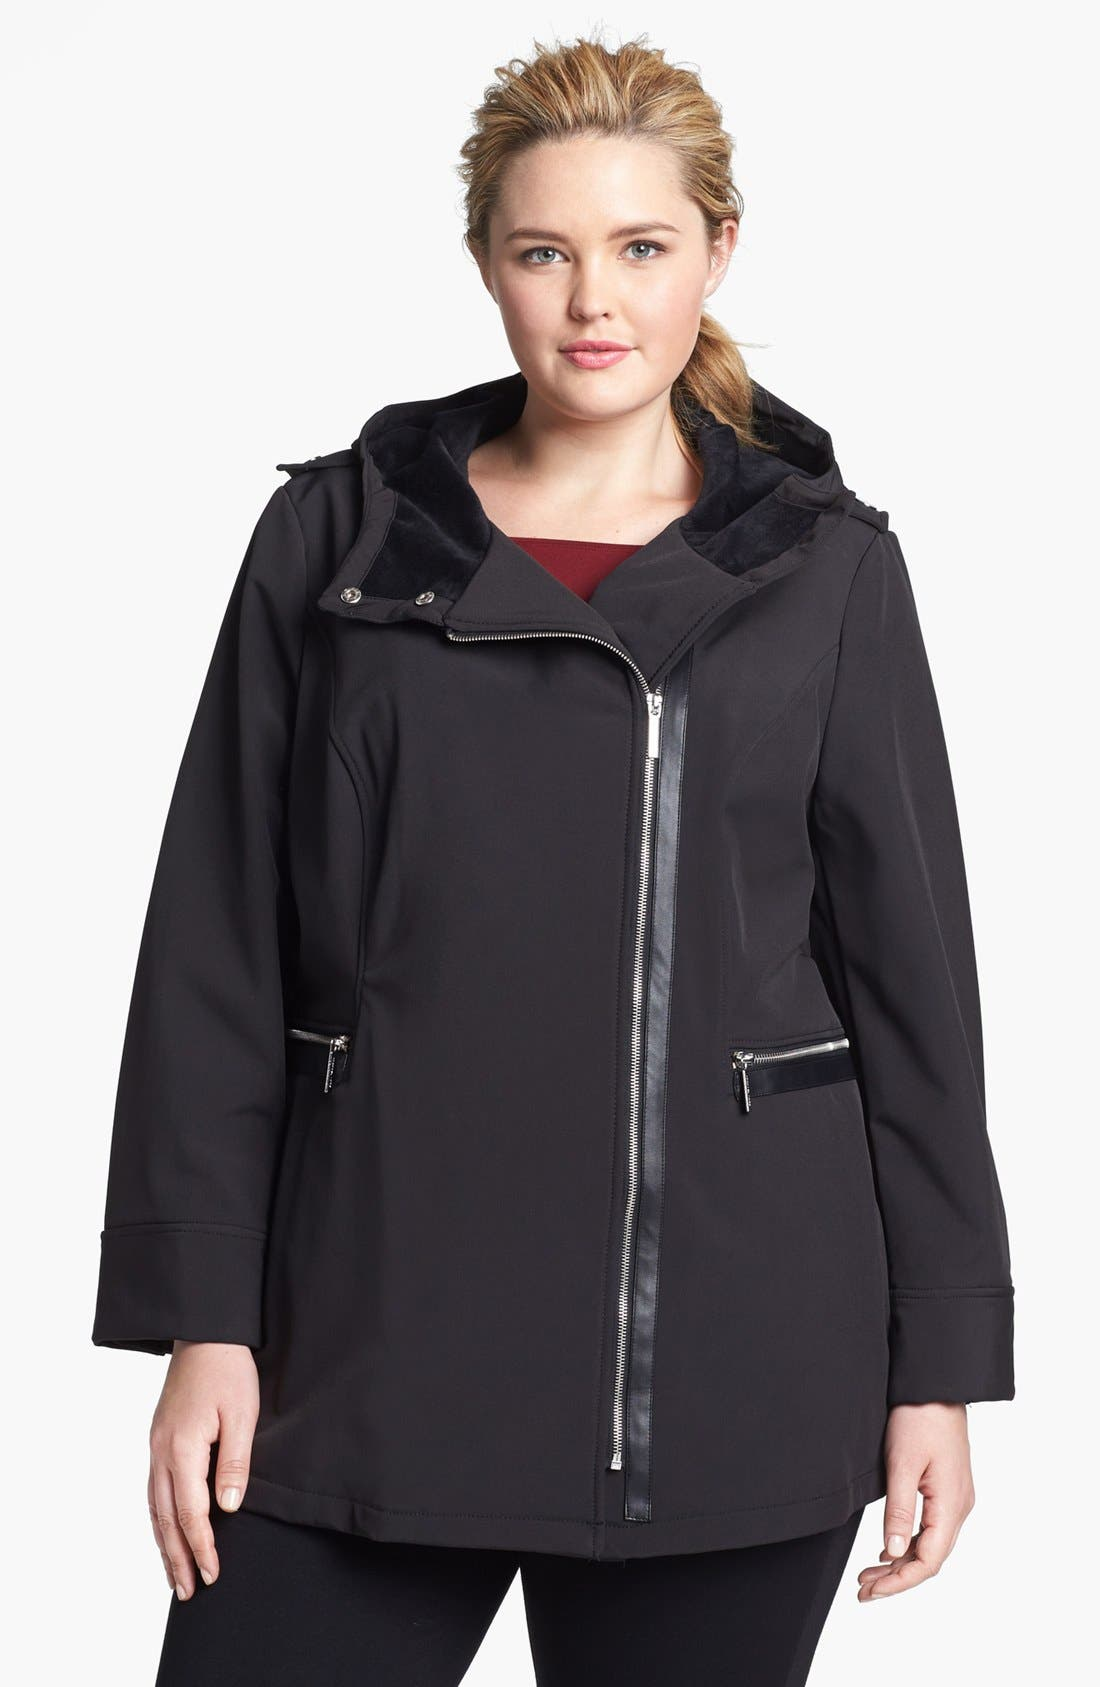 Alternate Image 1 Selected - MICHAEL Michael Kors Hooded Faux Leather Trim Soft Shell Jacket (Plus Size)